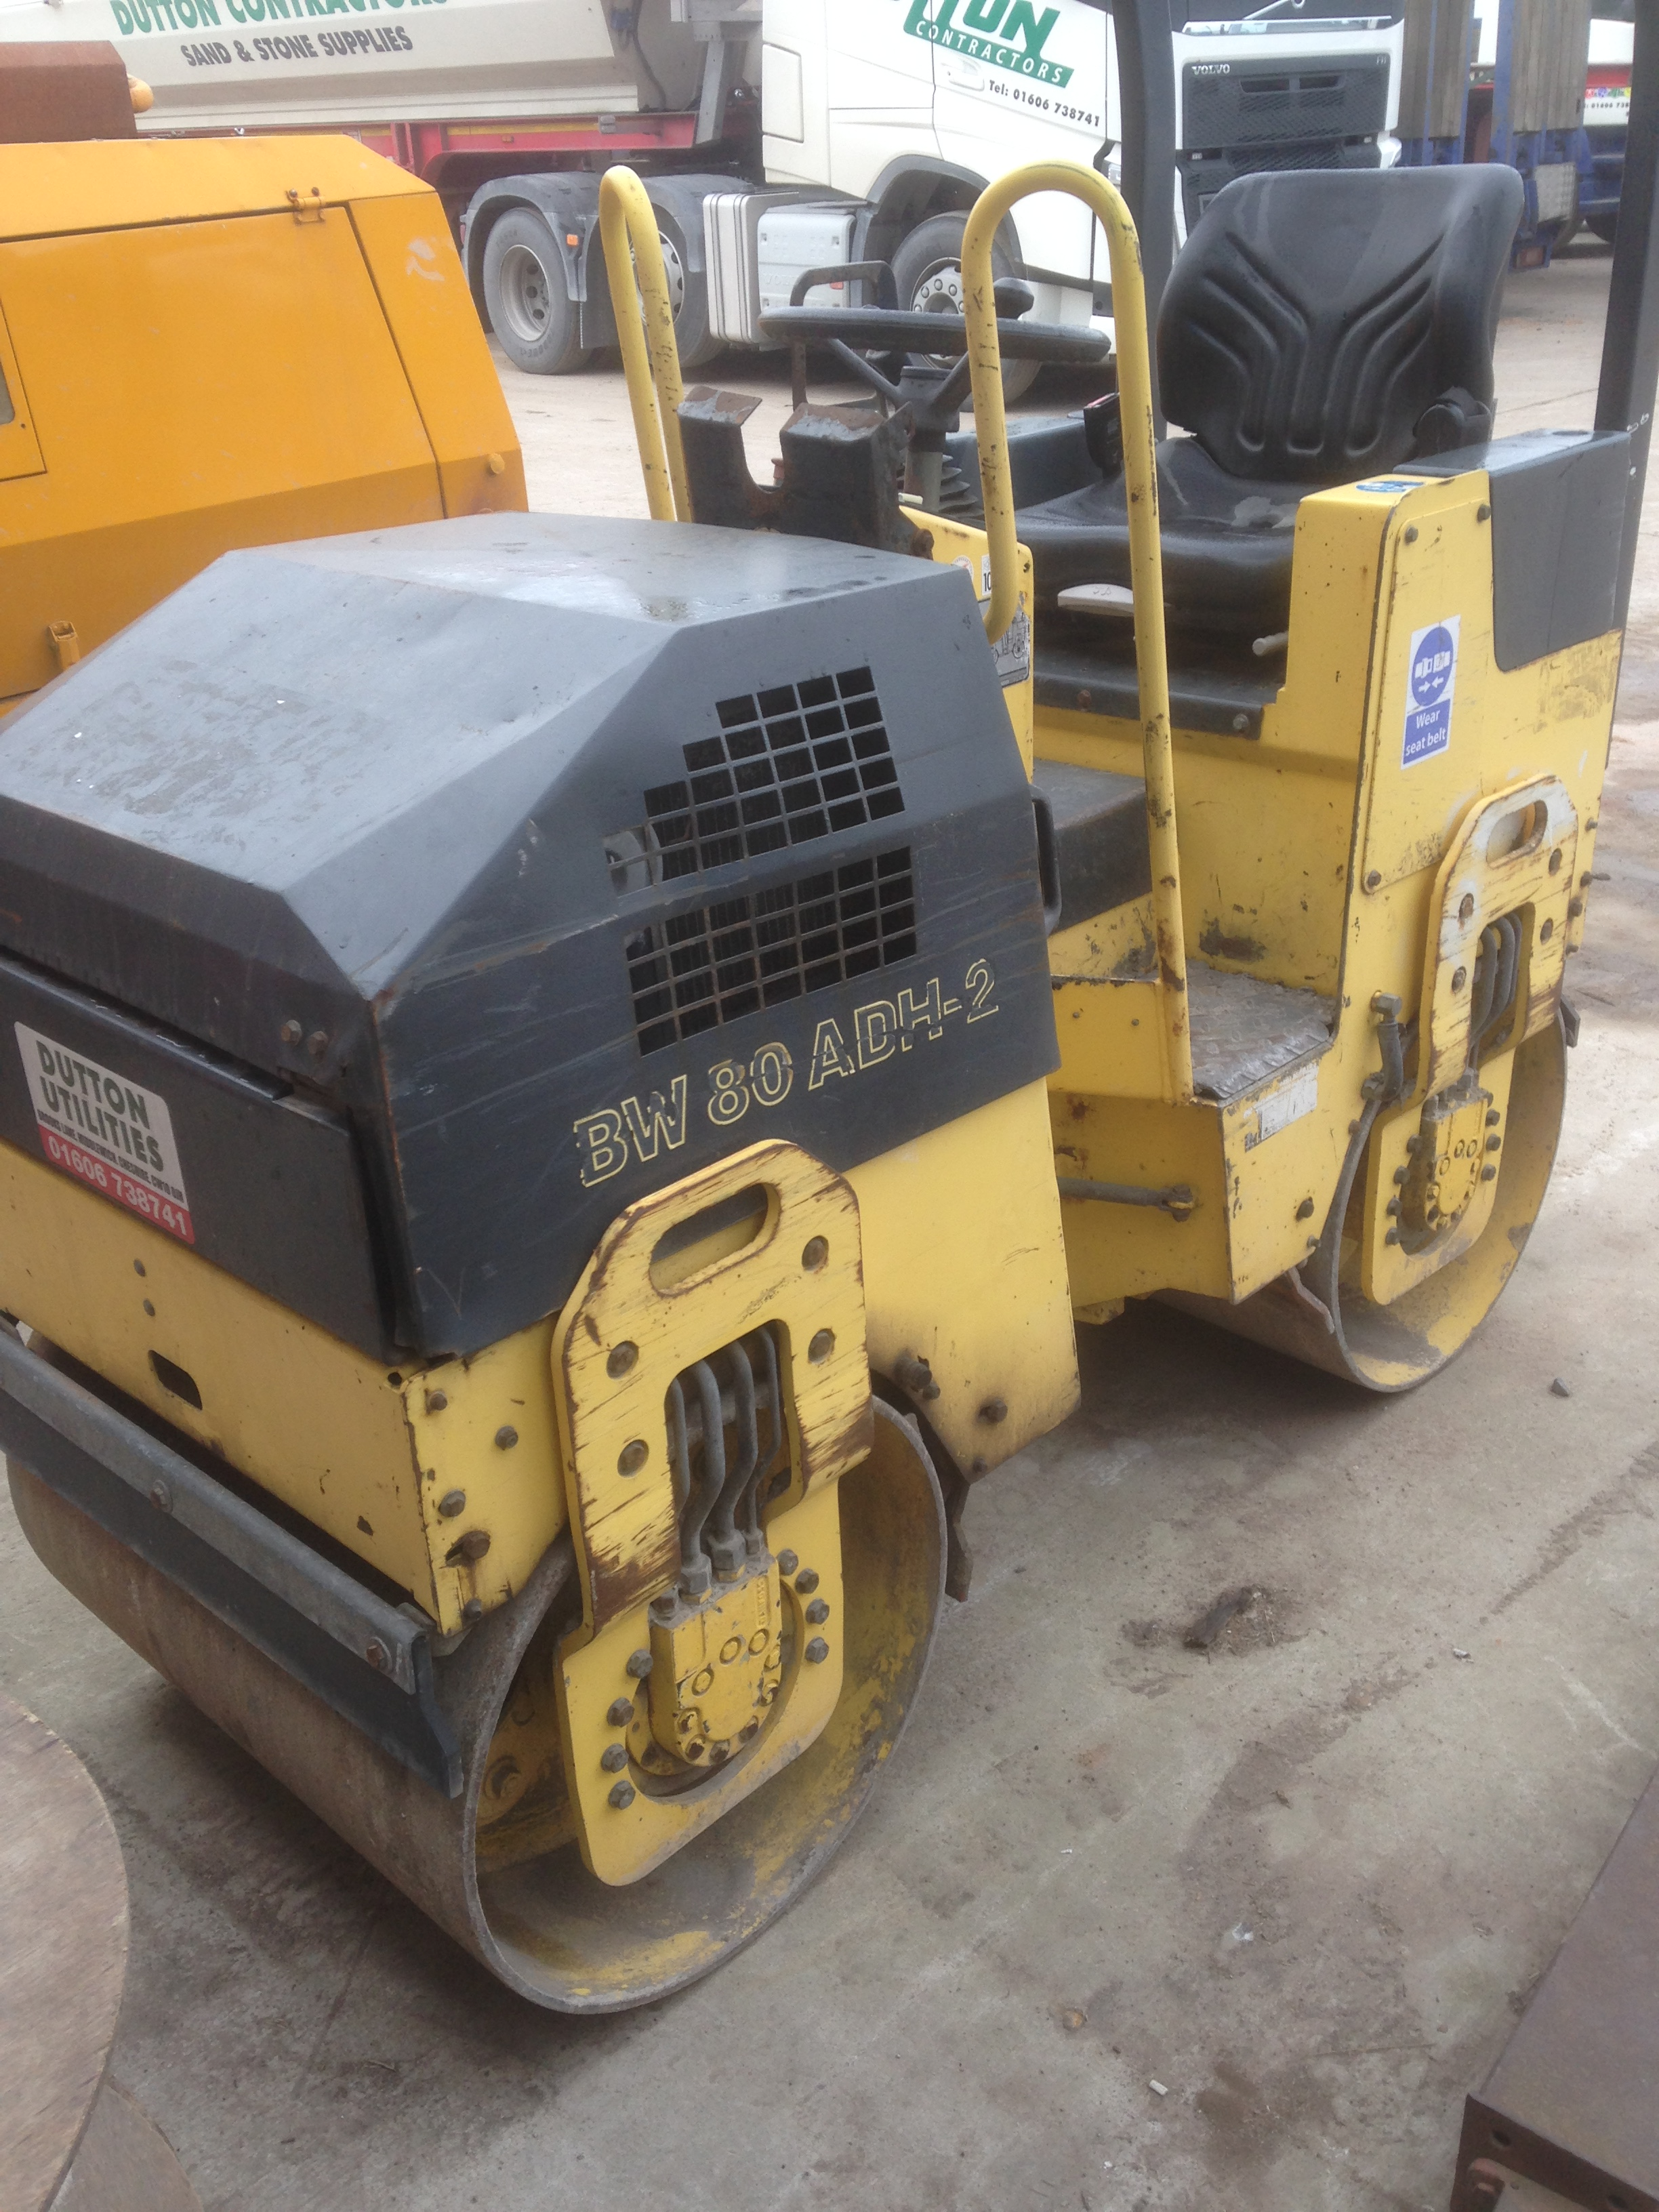 Lot 37 - Bomag BW80 ADH-2 twin drum roller c/w plant trailer